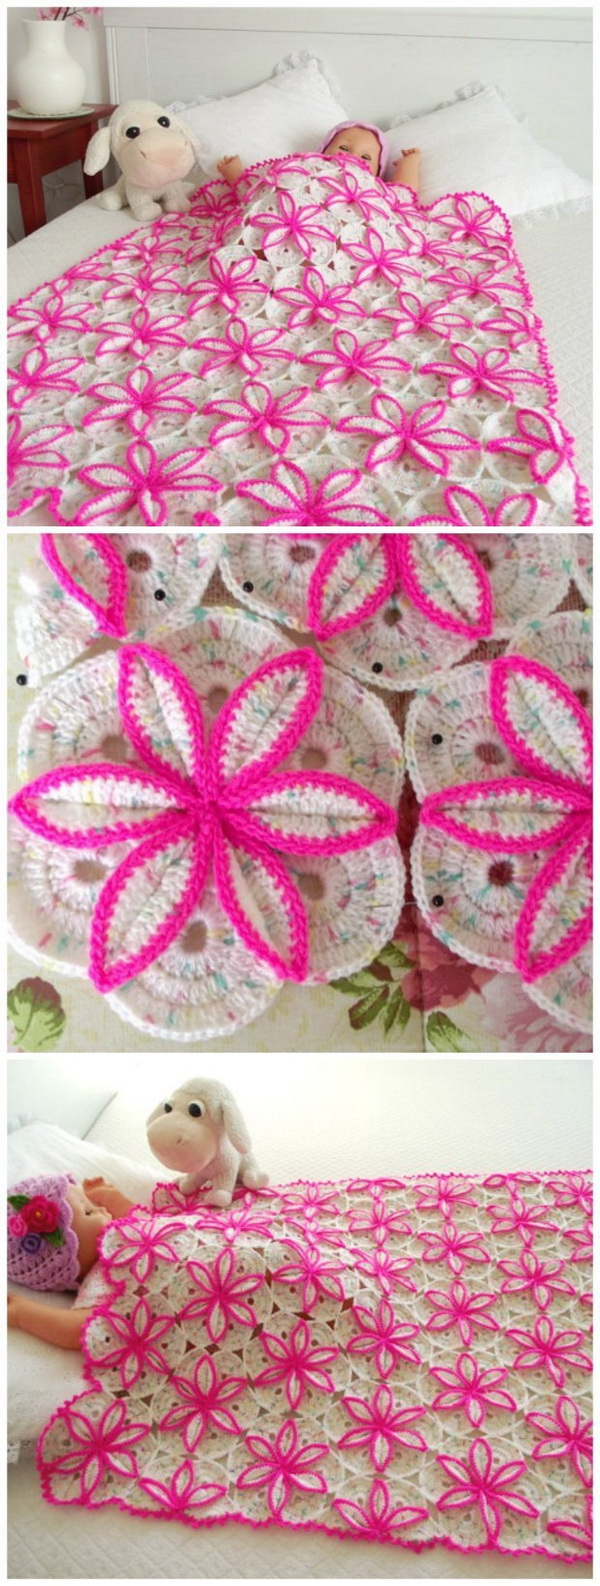 Quick And Easy Crochet Blanket Patterns For Beginners: Princess Floral Blanket Baby Blanket.